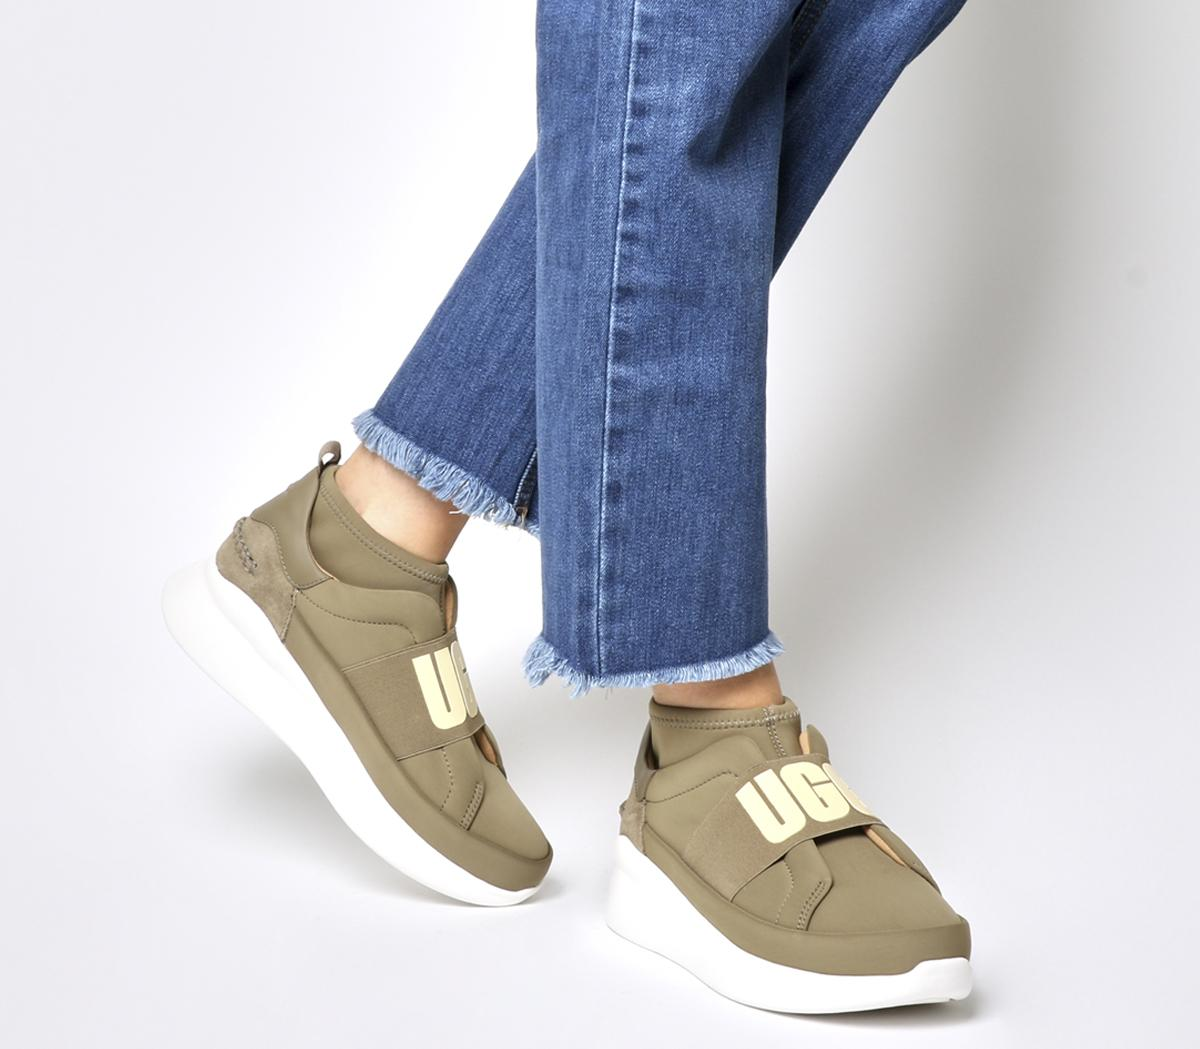 UGG Neutra Sneakers Antilope - Ankle Boots